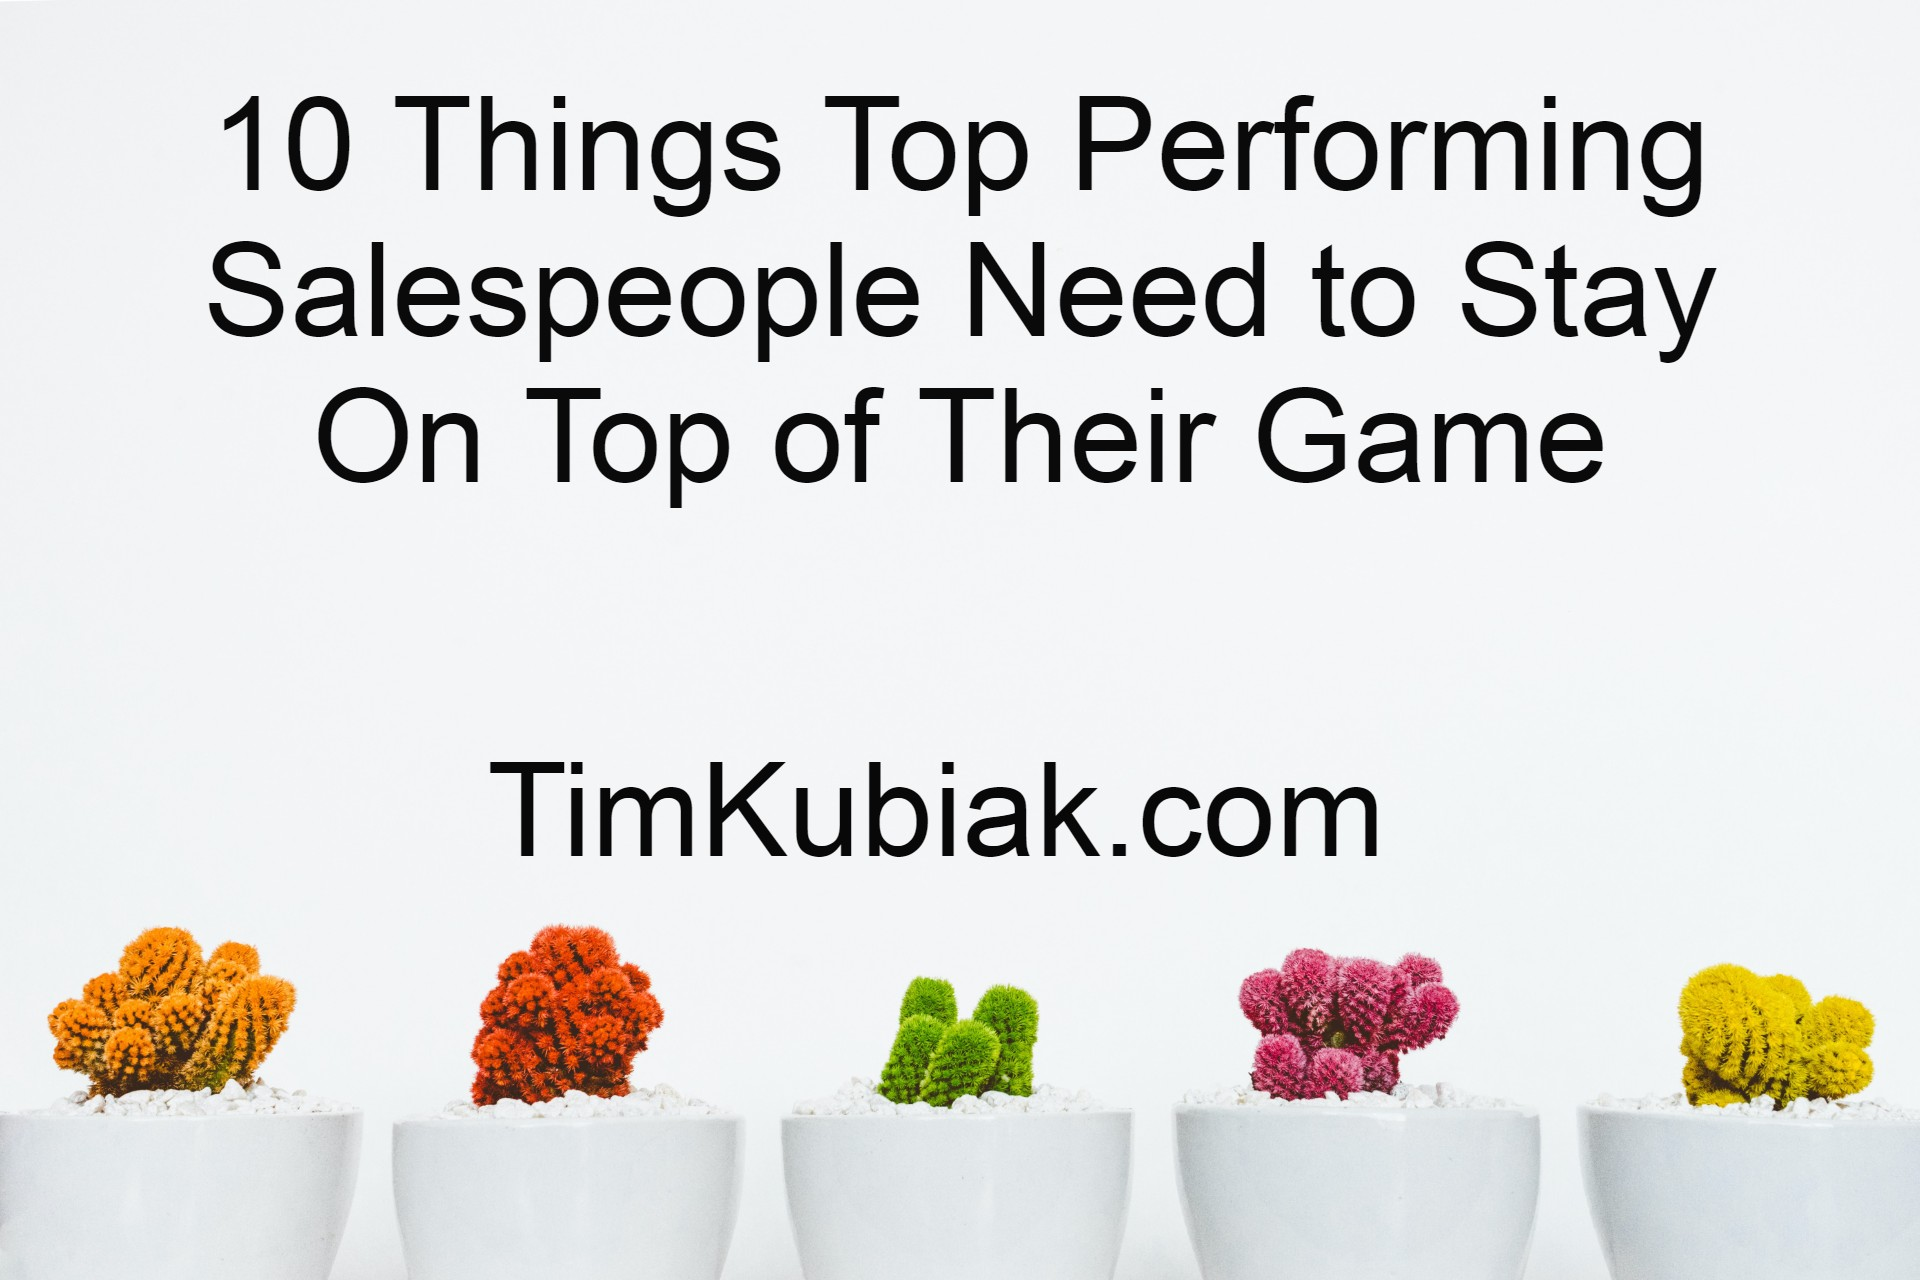 10 Things Top Performing Salespeople Need to Stay On Top of Their Game